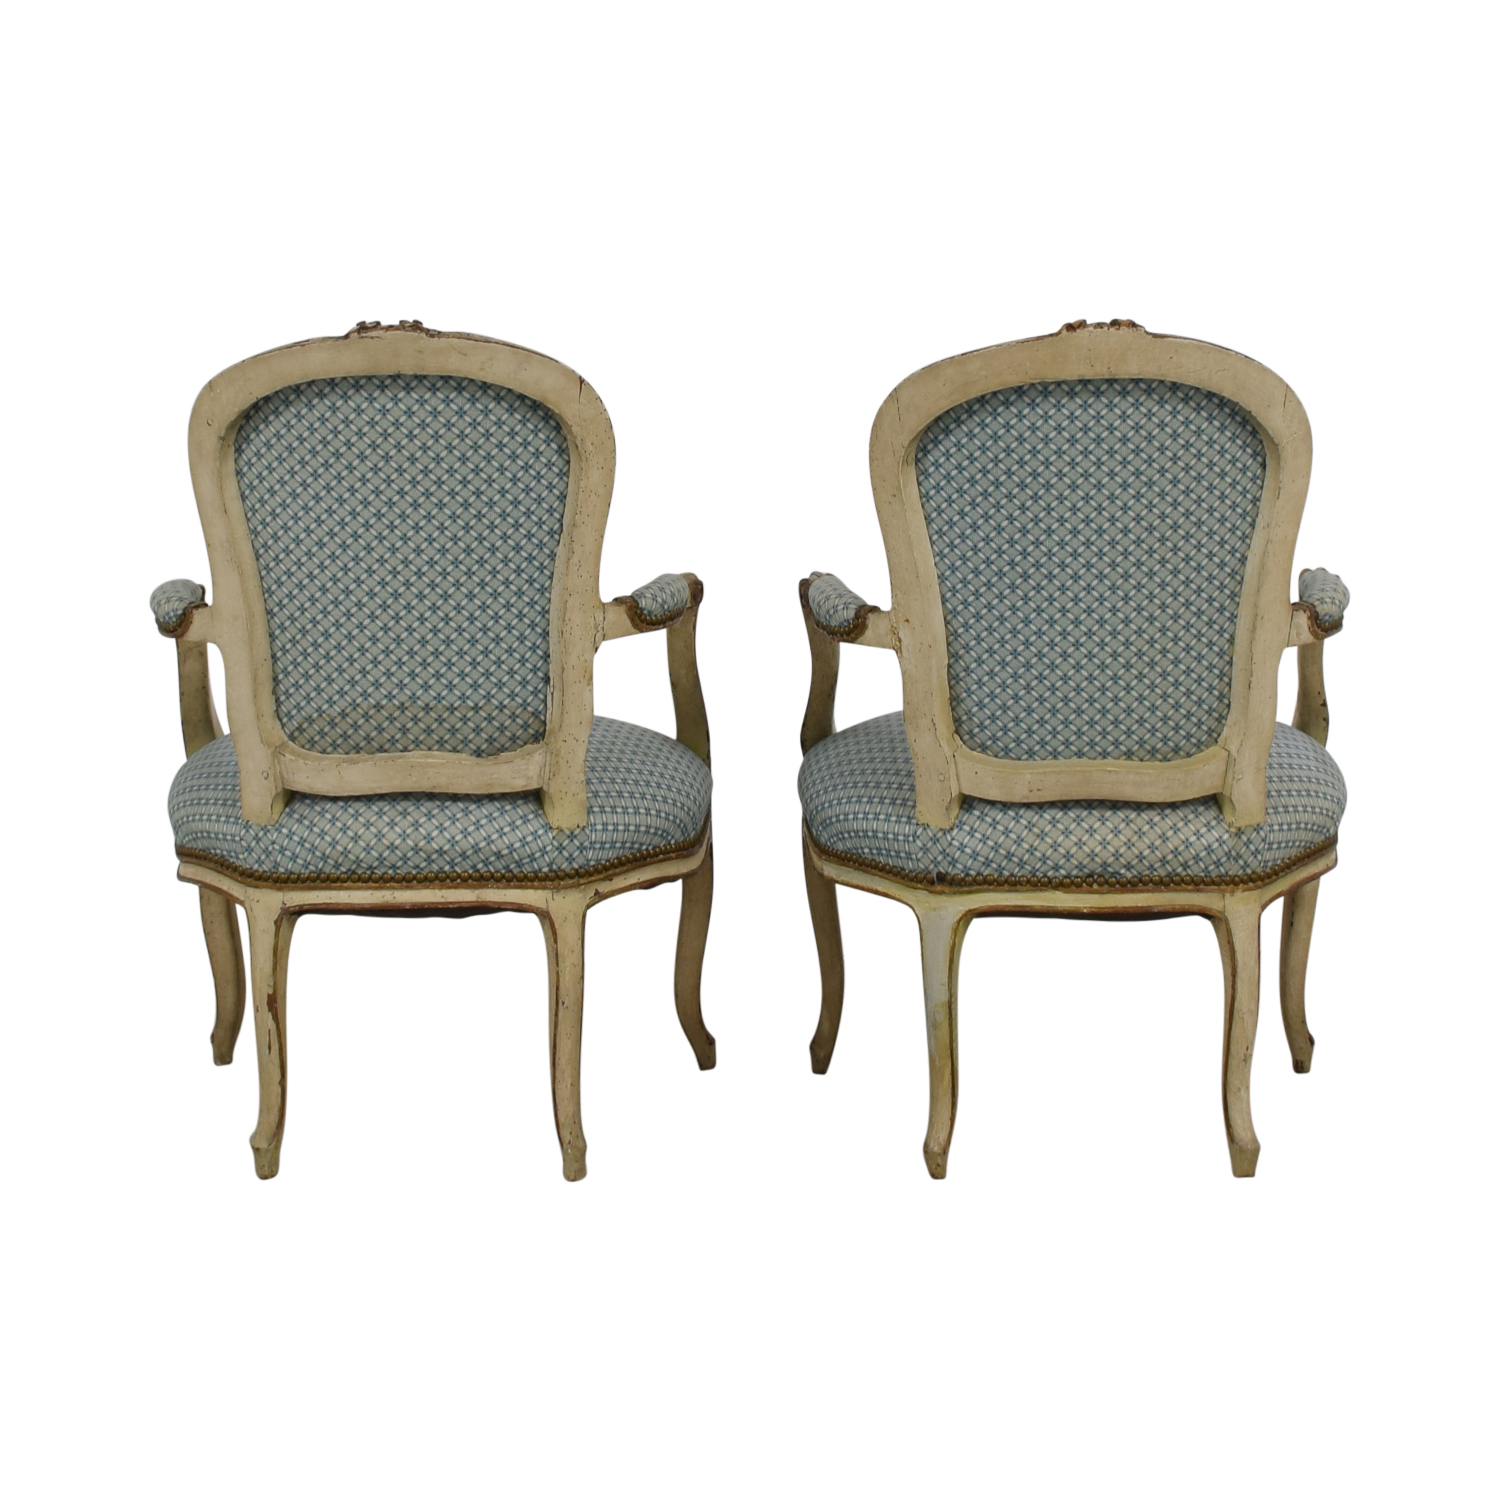 Furniture Masters Blue and White Accent Chairs / Chairs